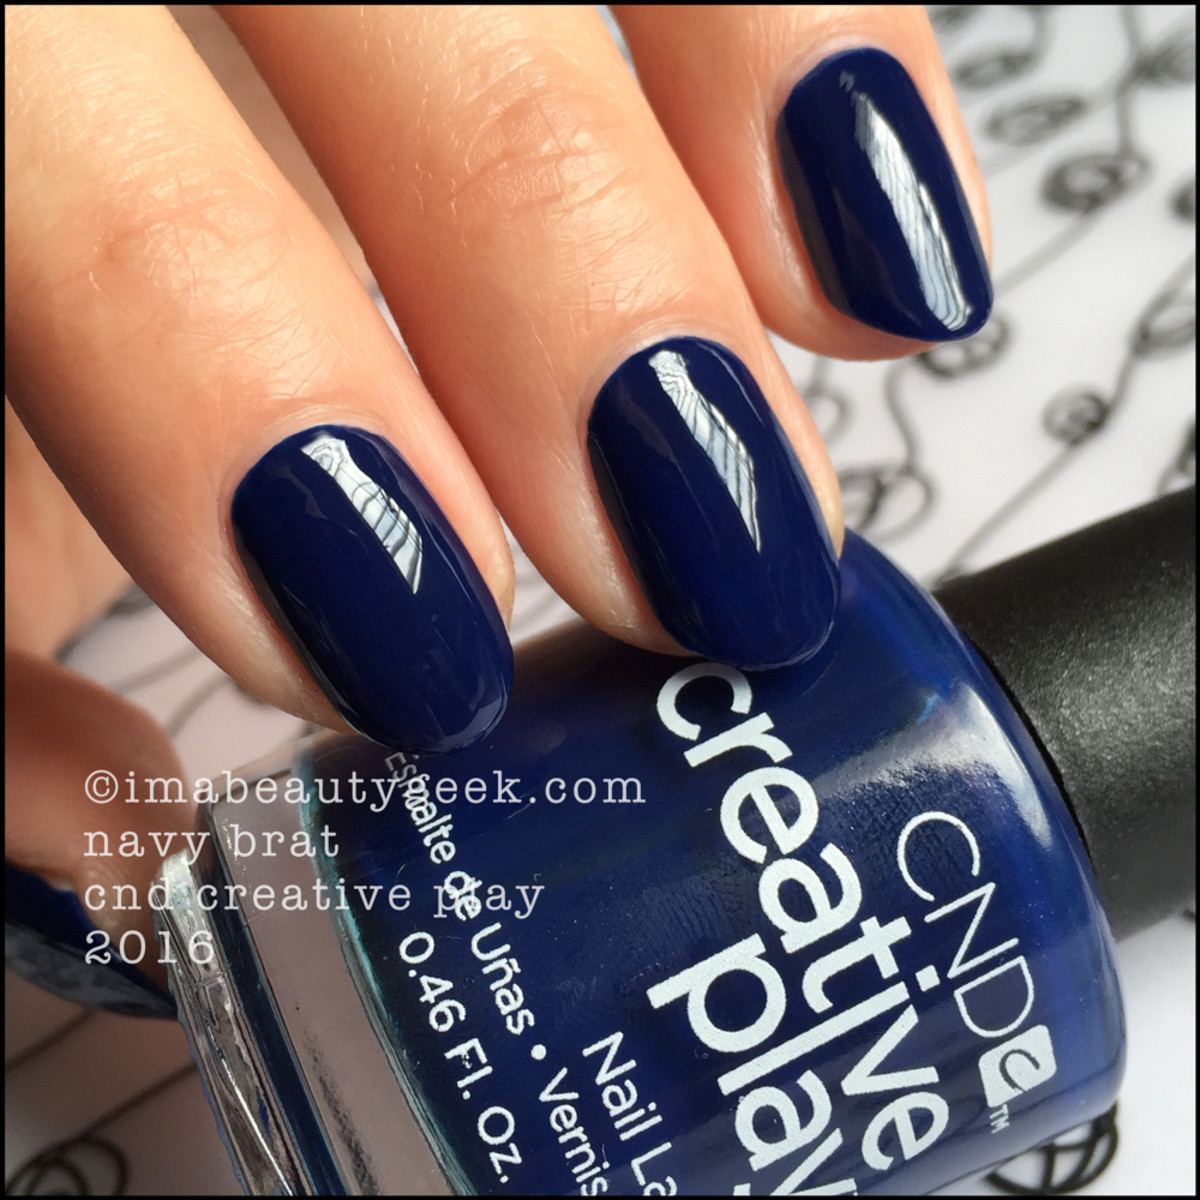 CND Creative Play Navy Brat_CND Creative Play Nail Polish Swatches